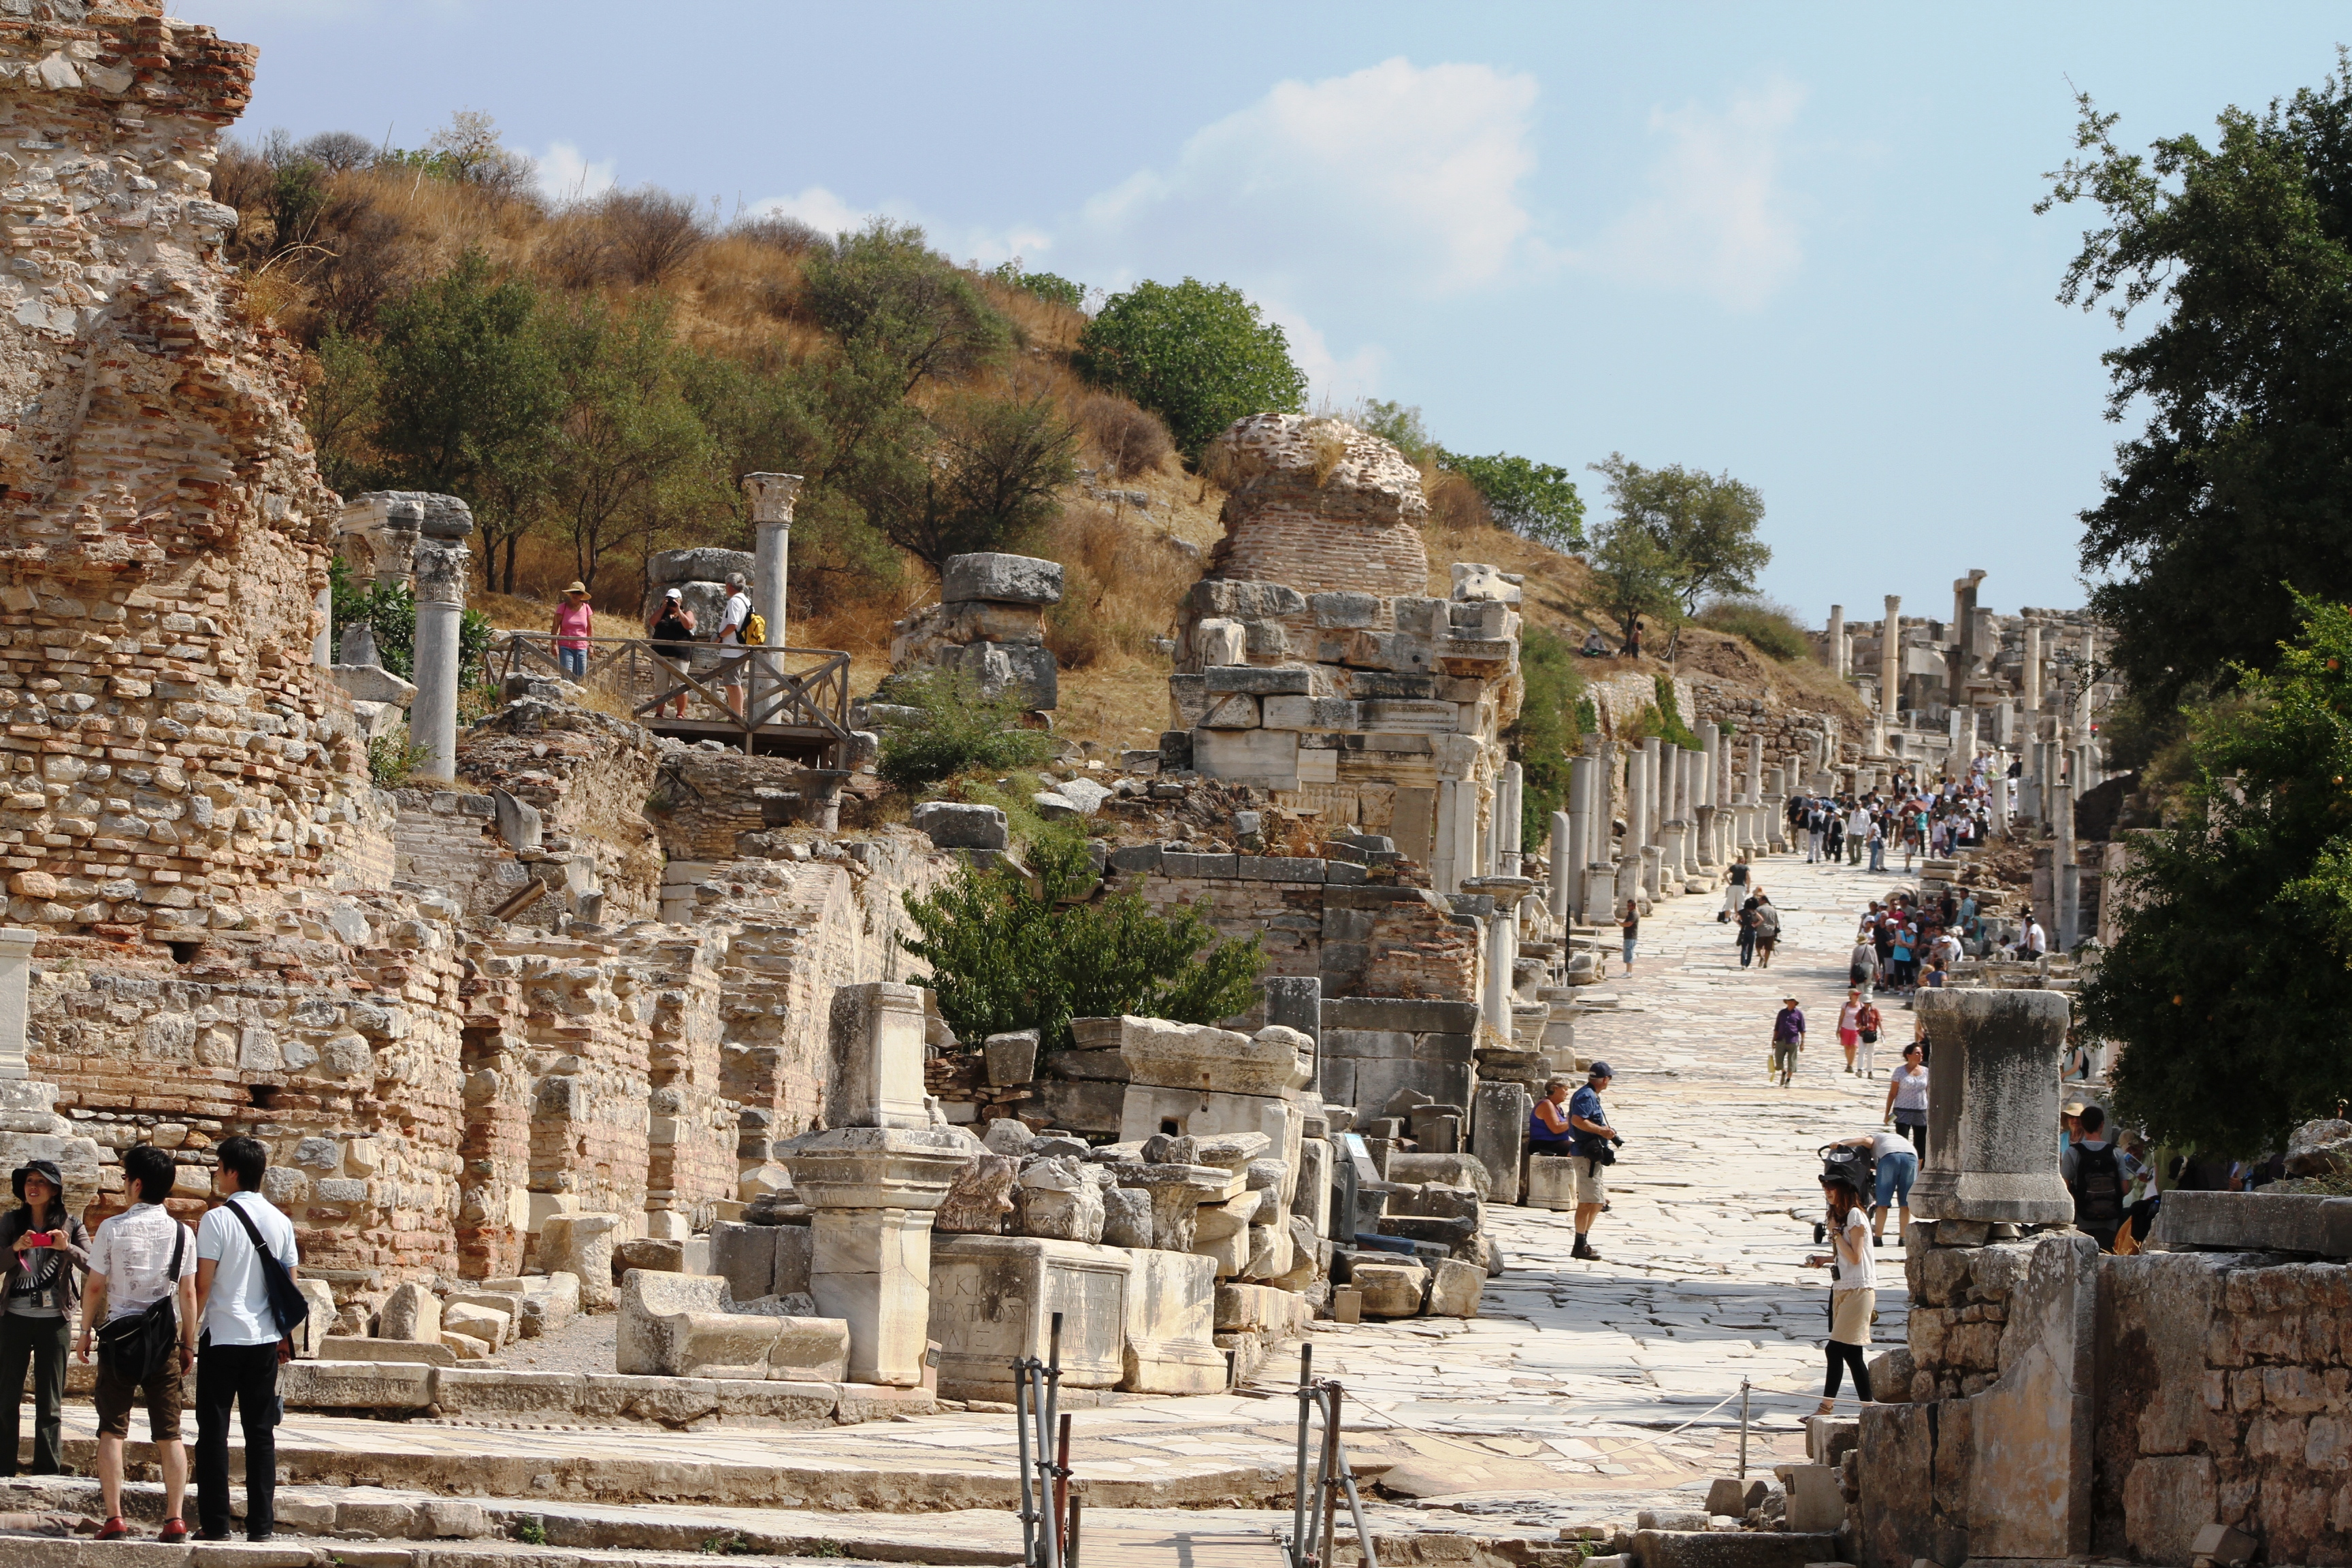 File:9.8 Curetes Street, looking up, in Ephesus.JPG ...